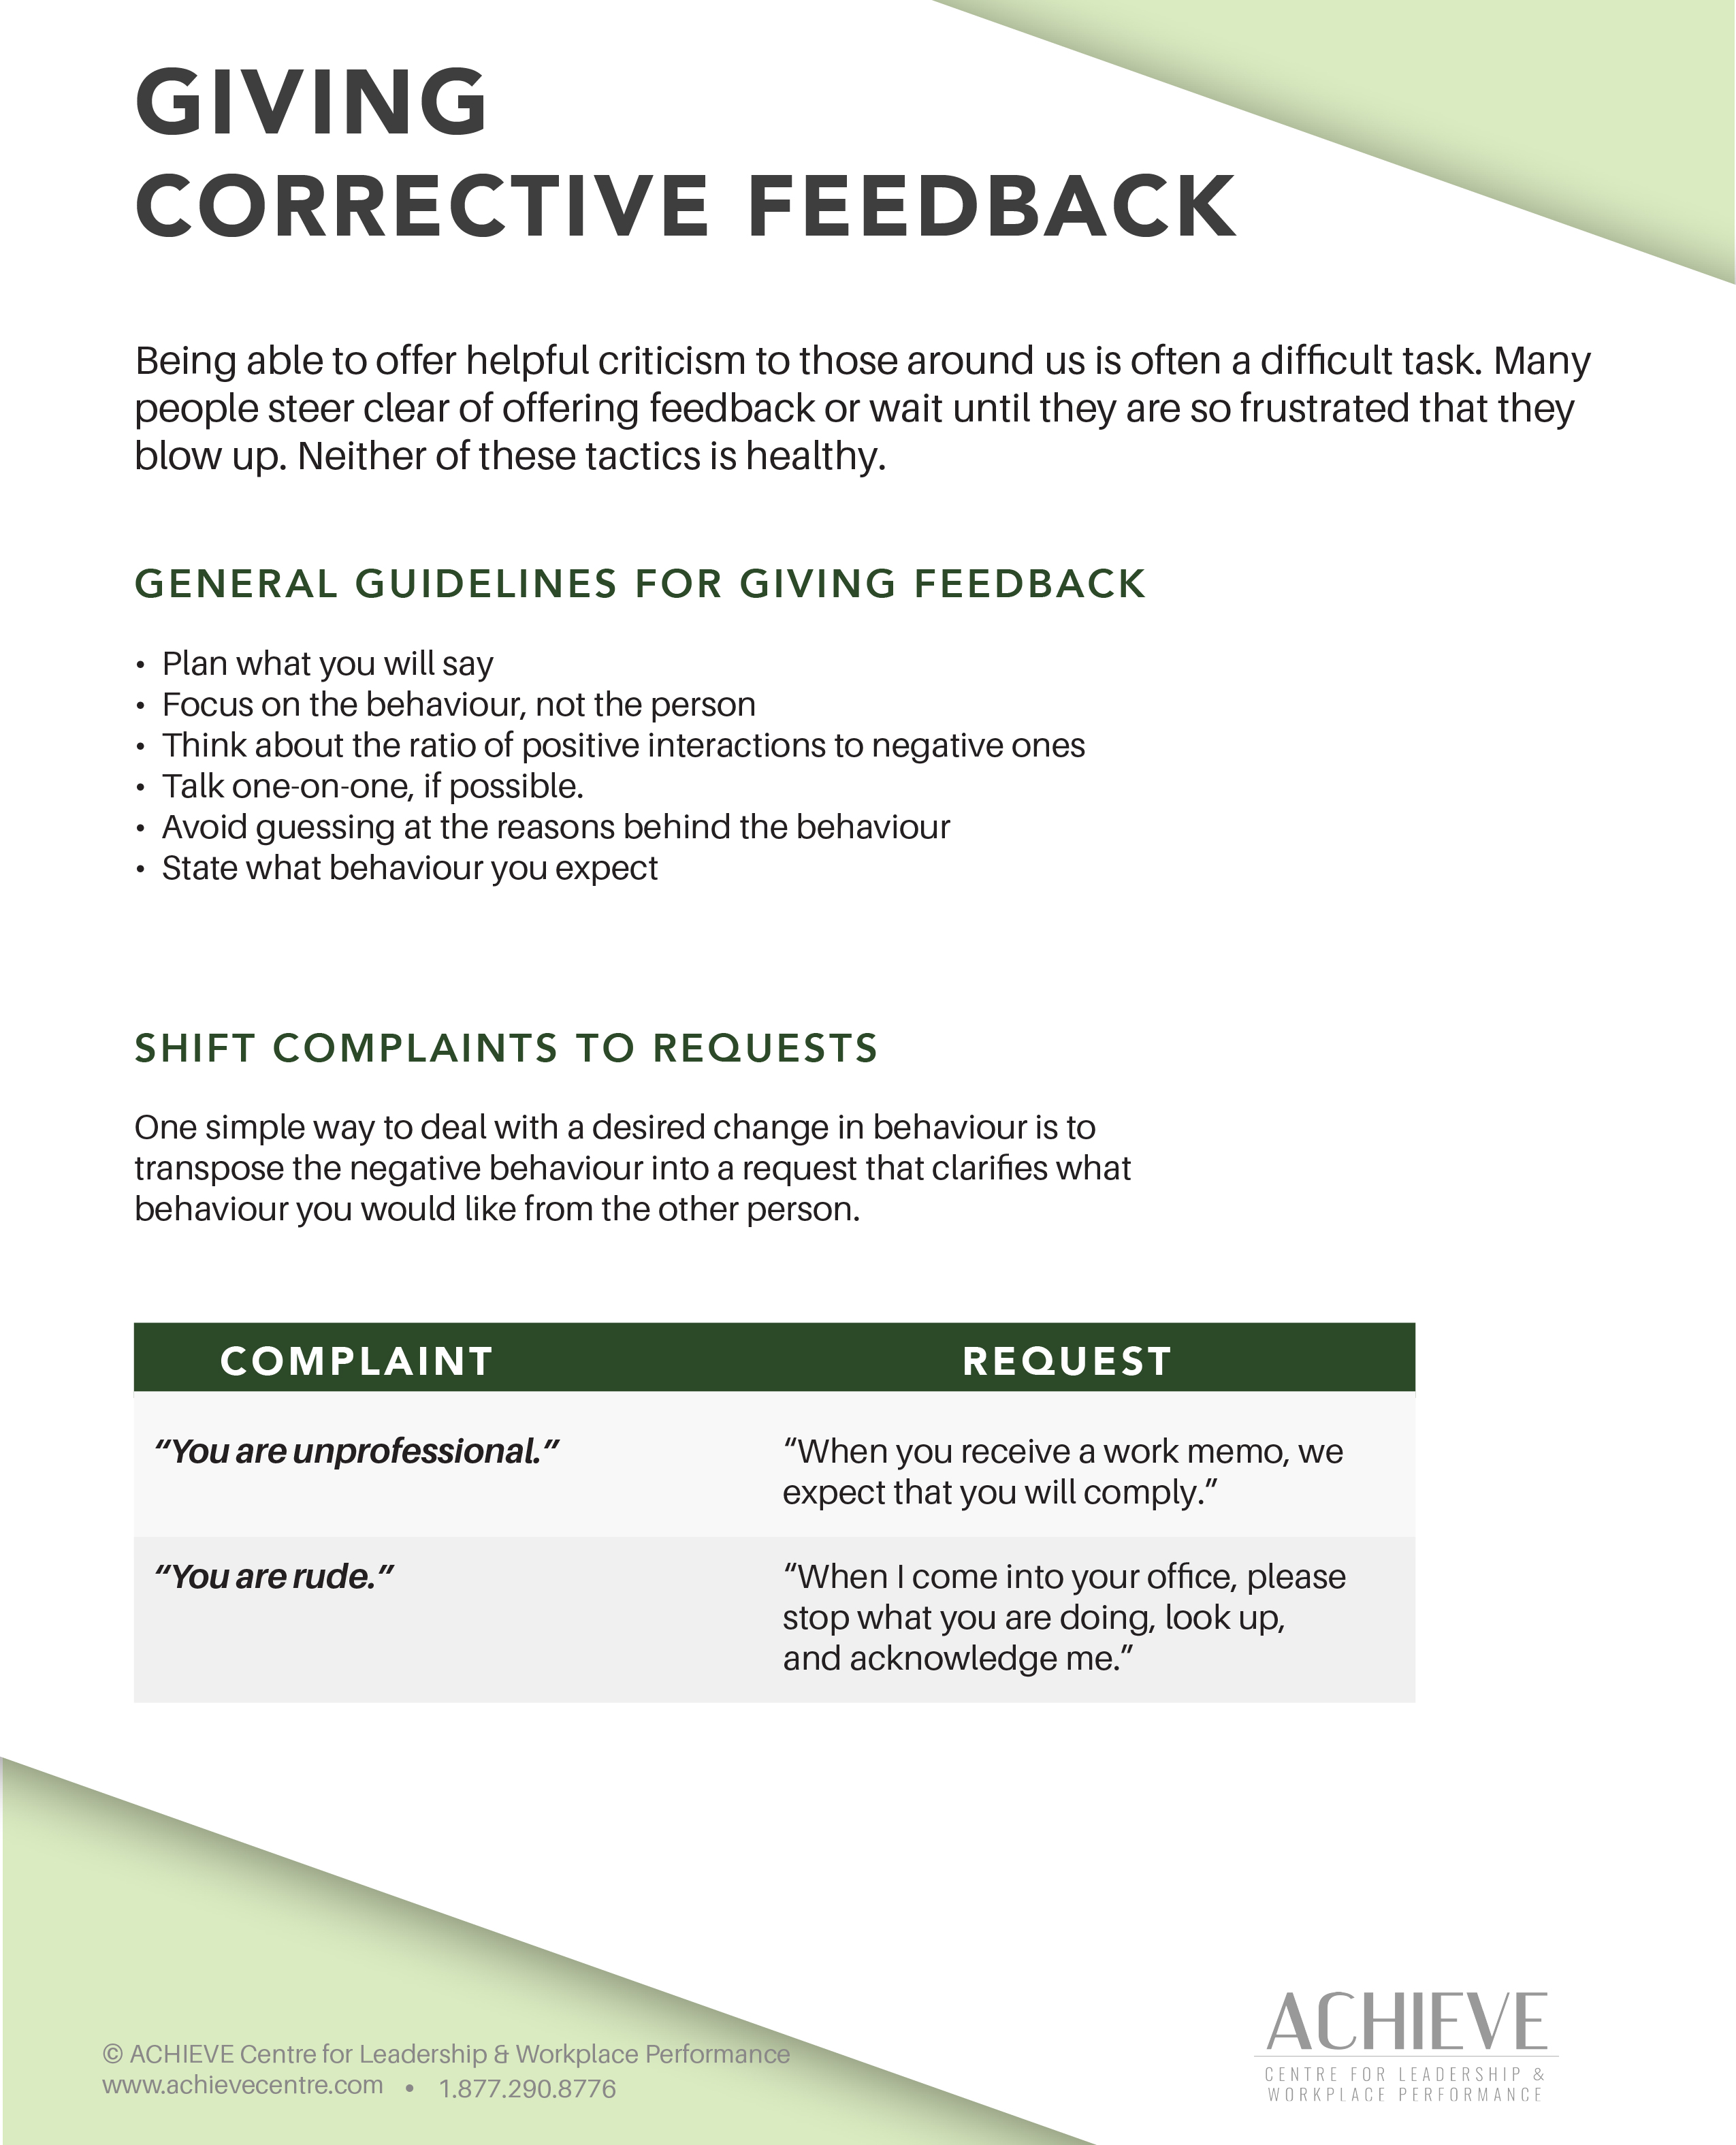 Image of handout Giving Corrective Feedback